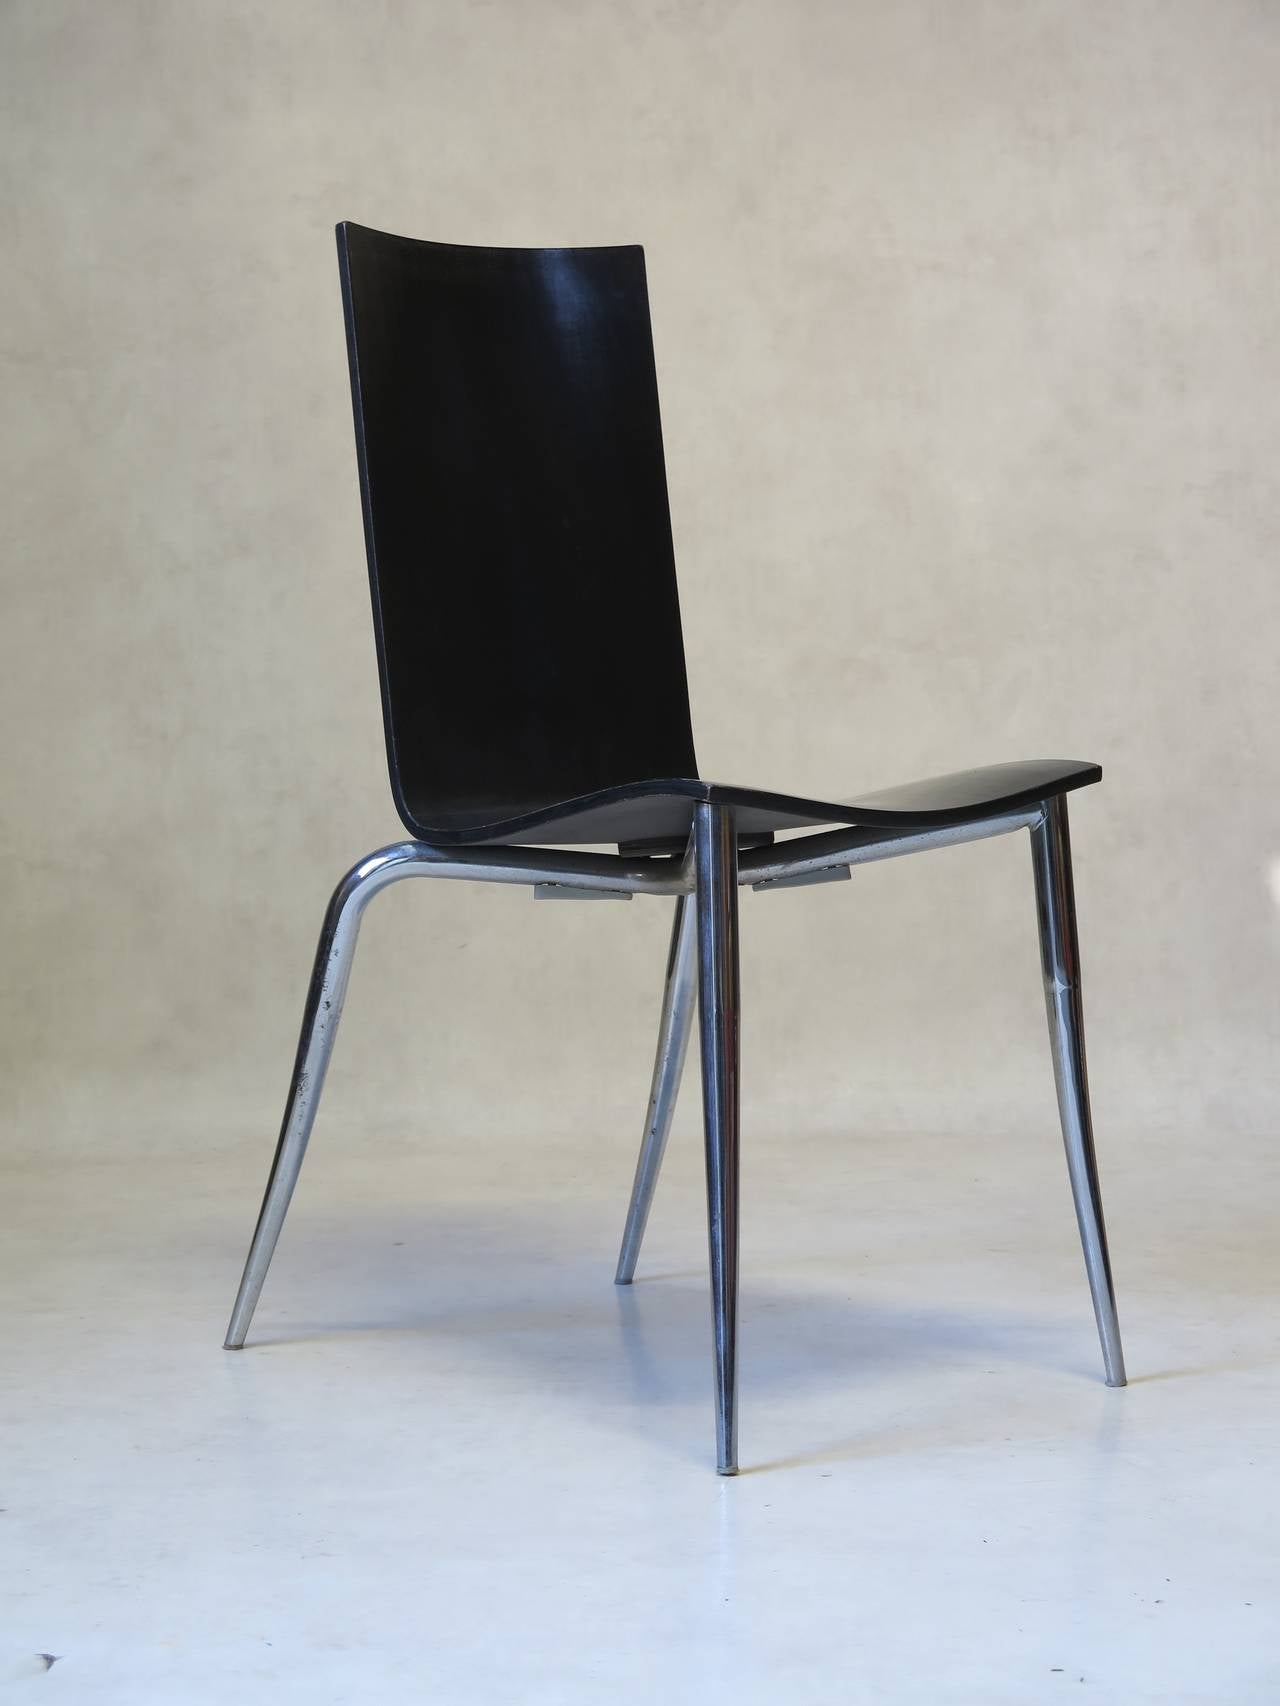 Set of four philippe starck chairs france 1990s for sale at 1stdibs - Chaises philippe starck ...